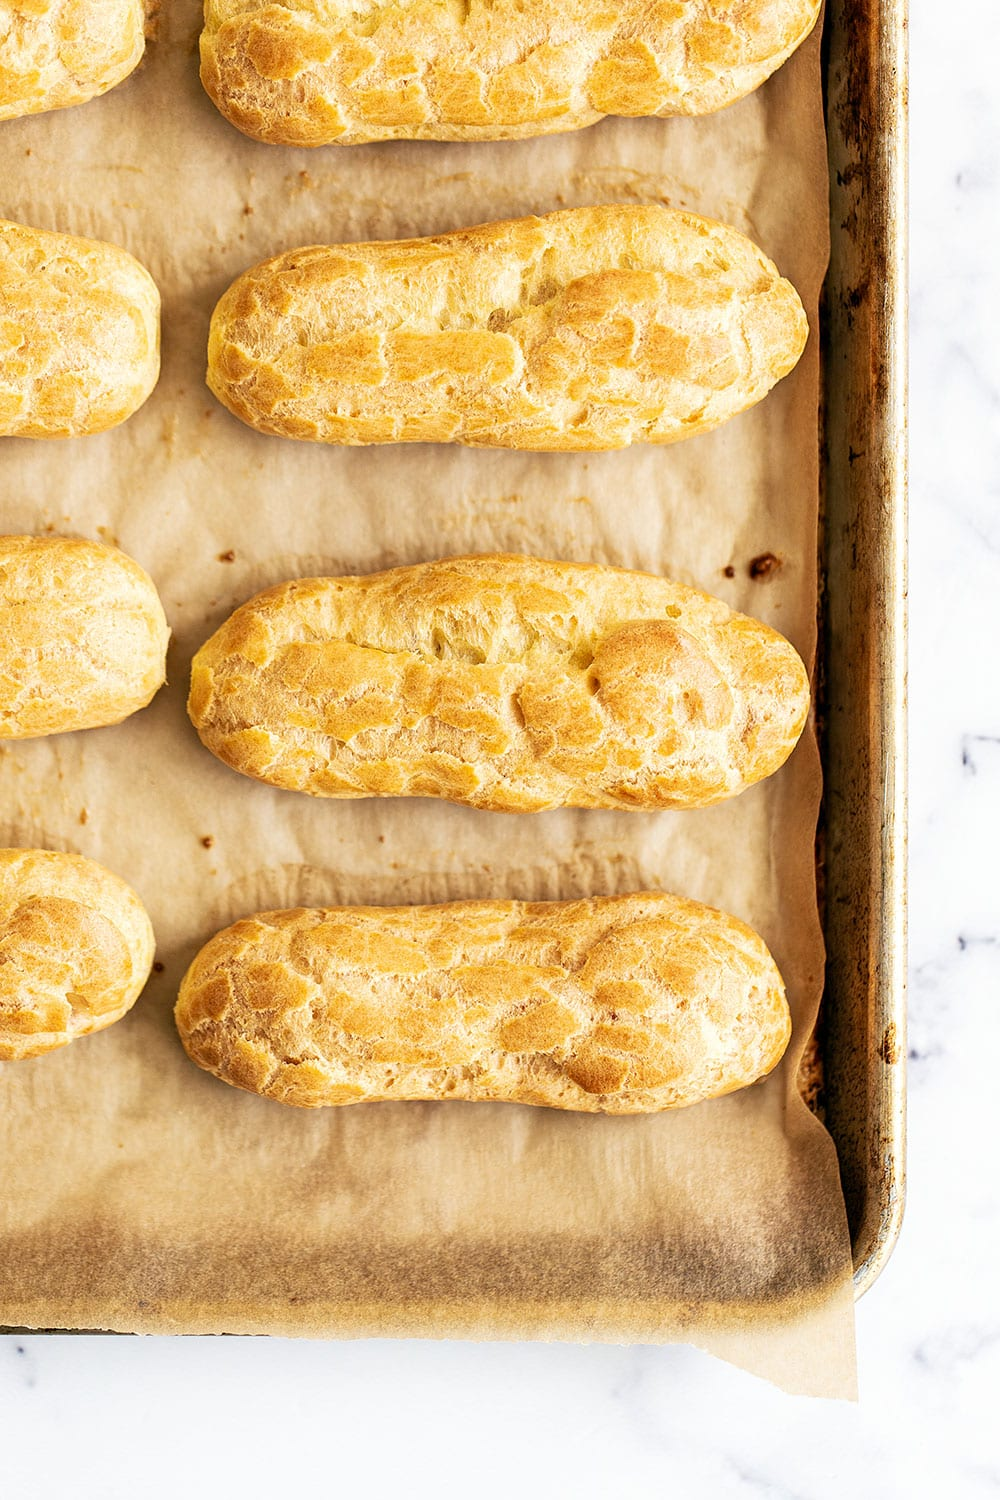 Unglazed and unfilled eclairs on a baking tray